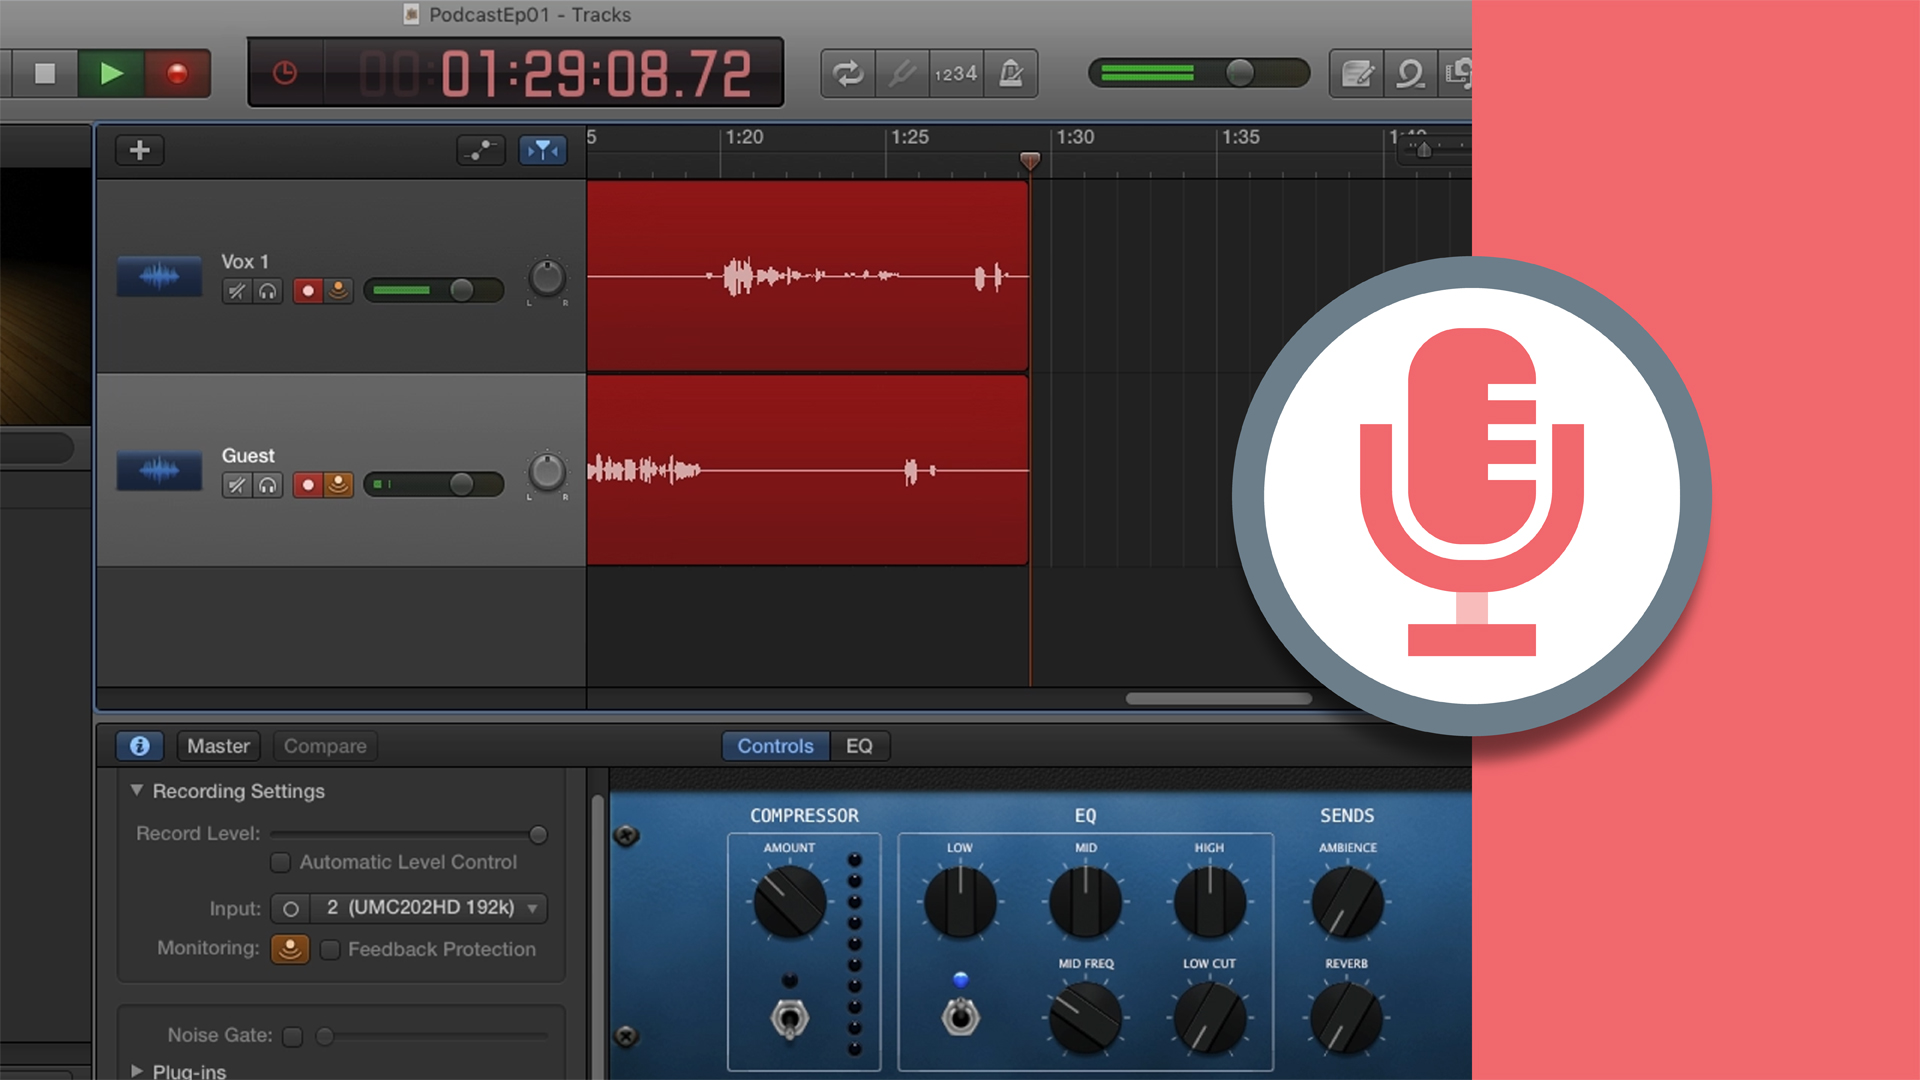 Welcome: Podcasting with GarageBand